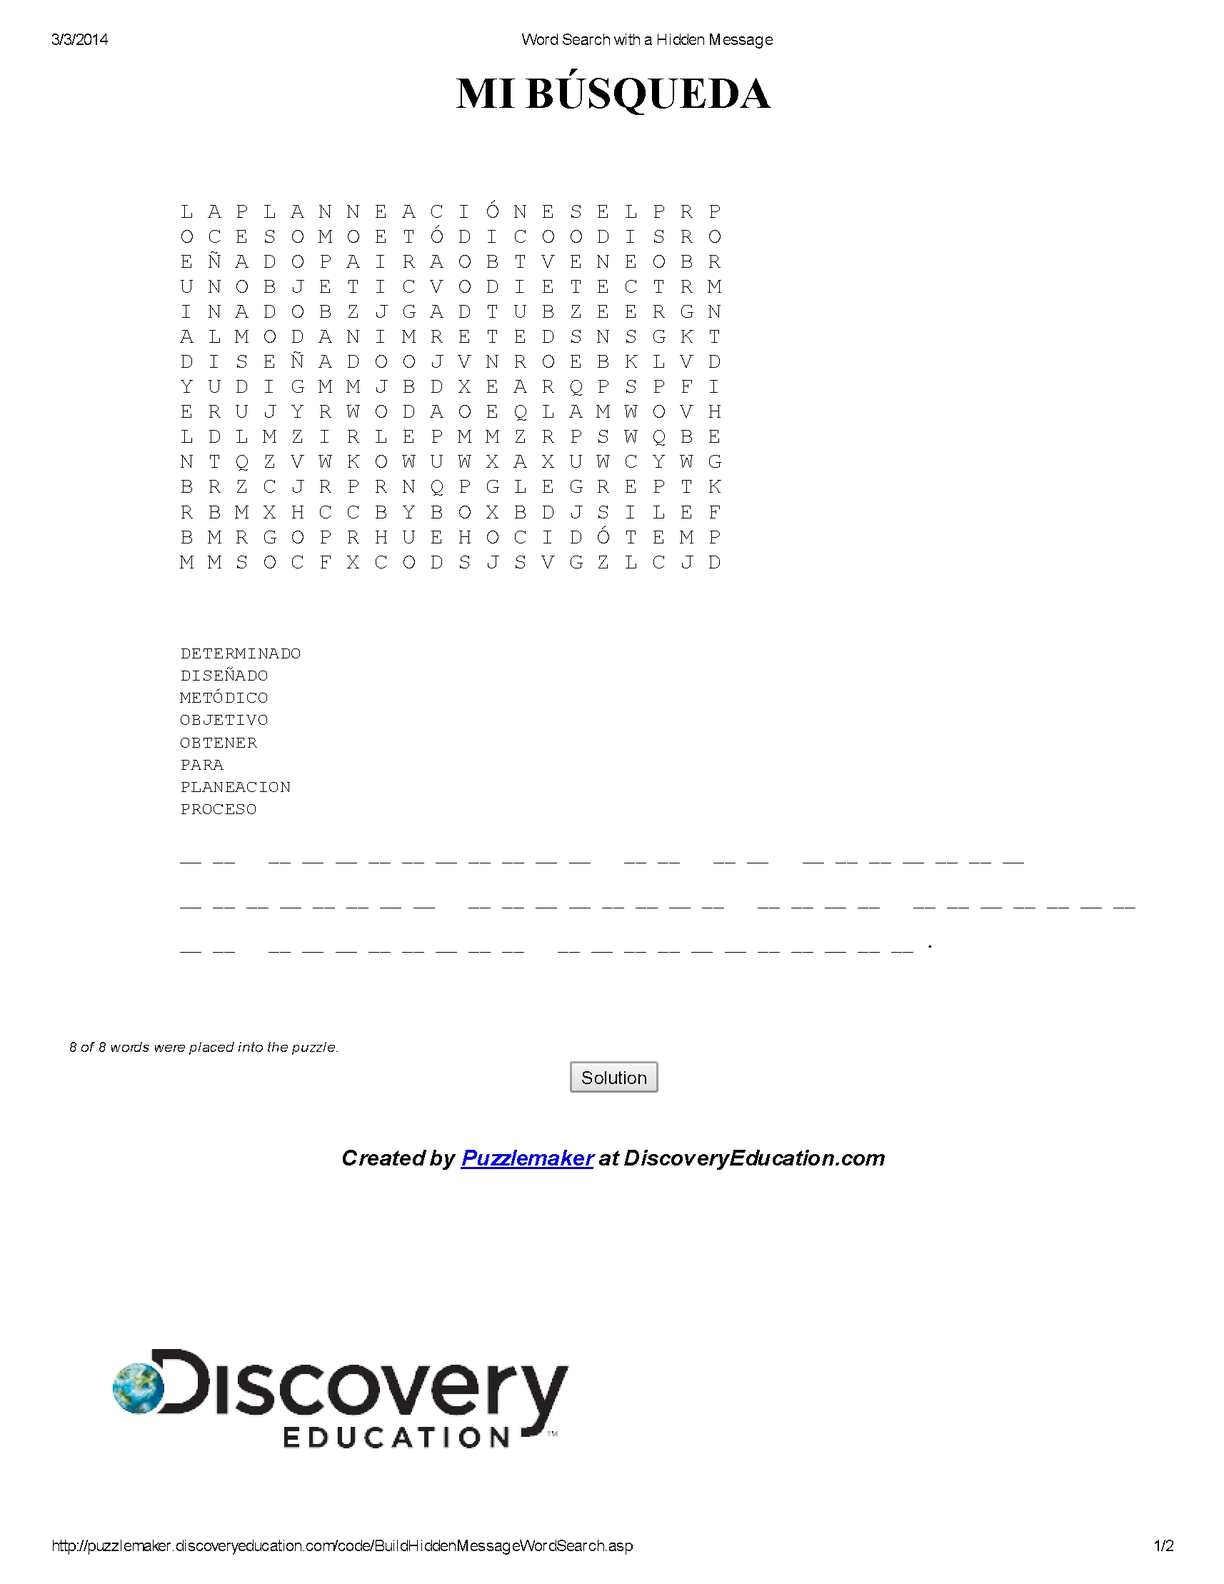 View 29 Puzzle Maker Word Search With Hidden Message